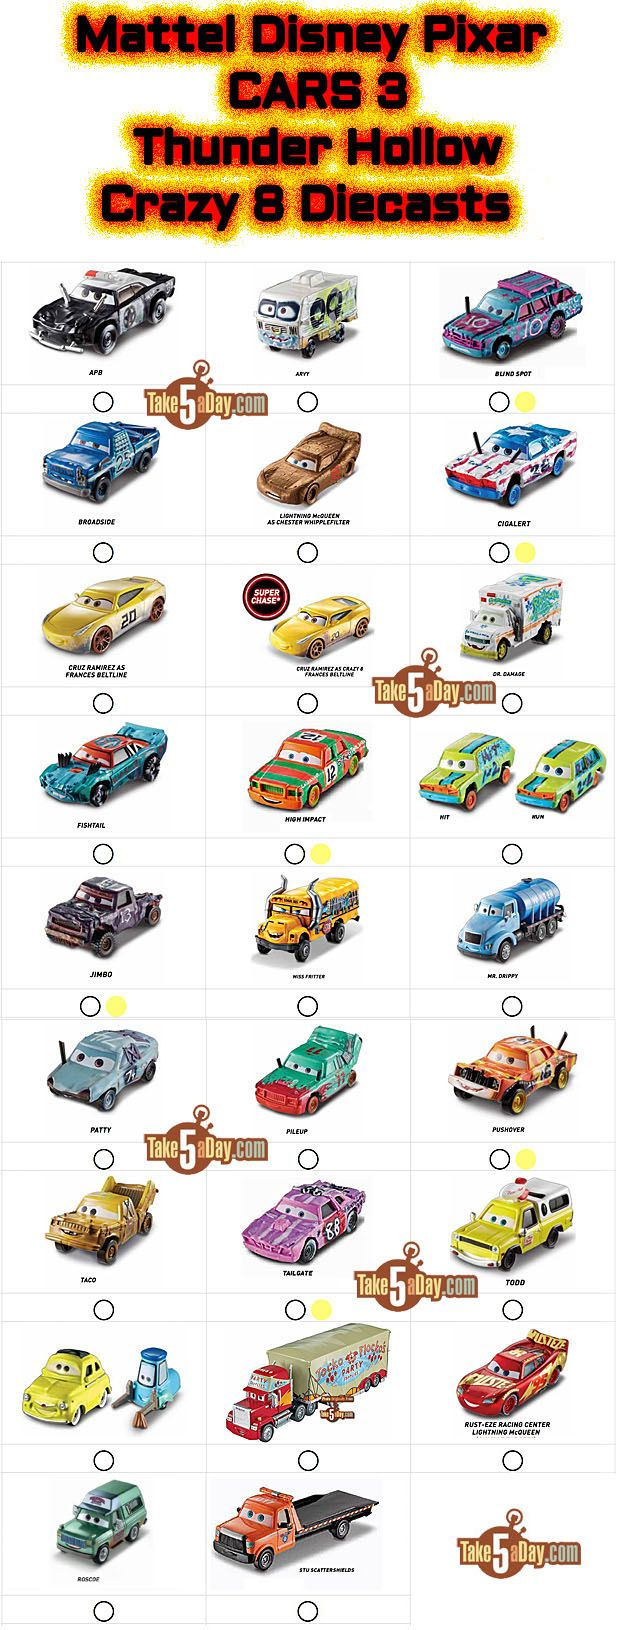 Mattel disney pixar cars 3 thunder hollow crazy 8 race diecasts checklist disney pixar cars - Coloriage cars 3 thunder hollow ...